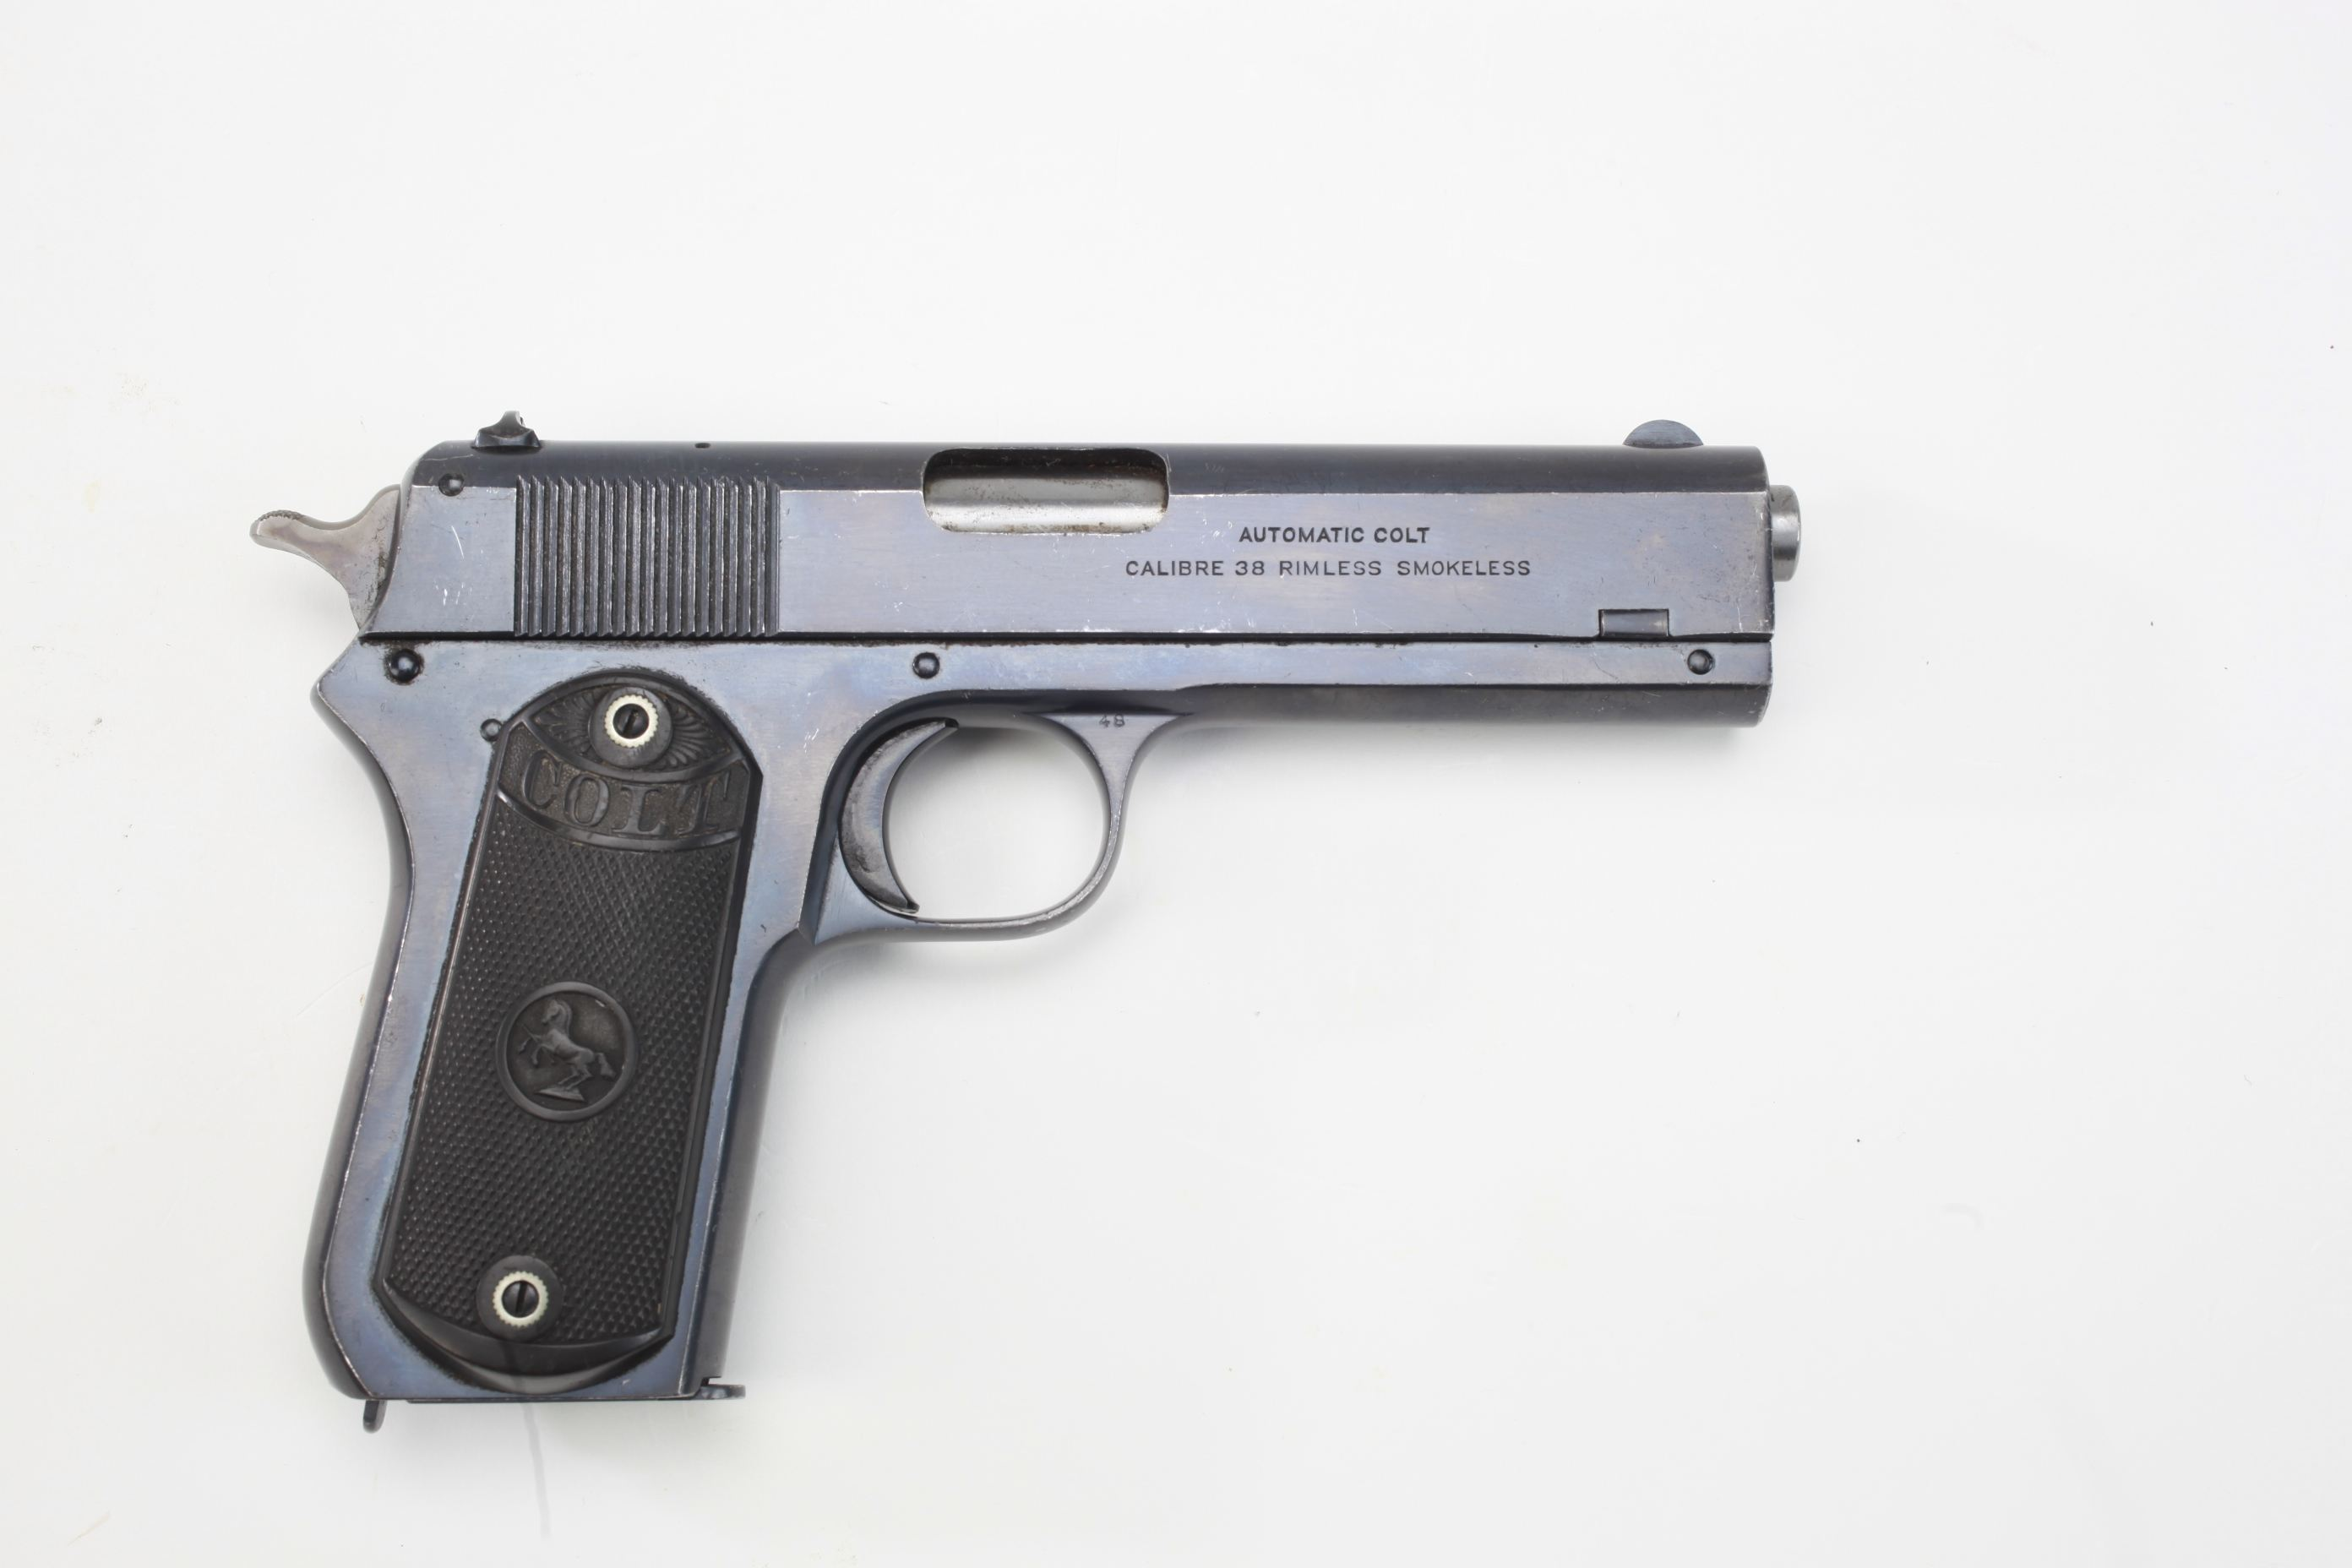 Colt Model 1903 Pocket Automatic Pistol